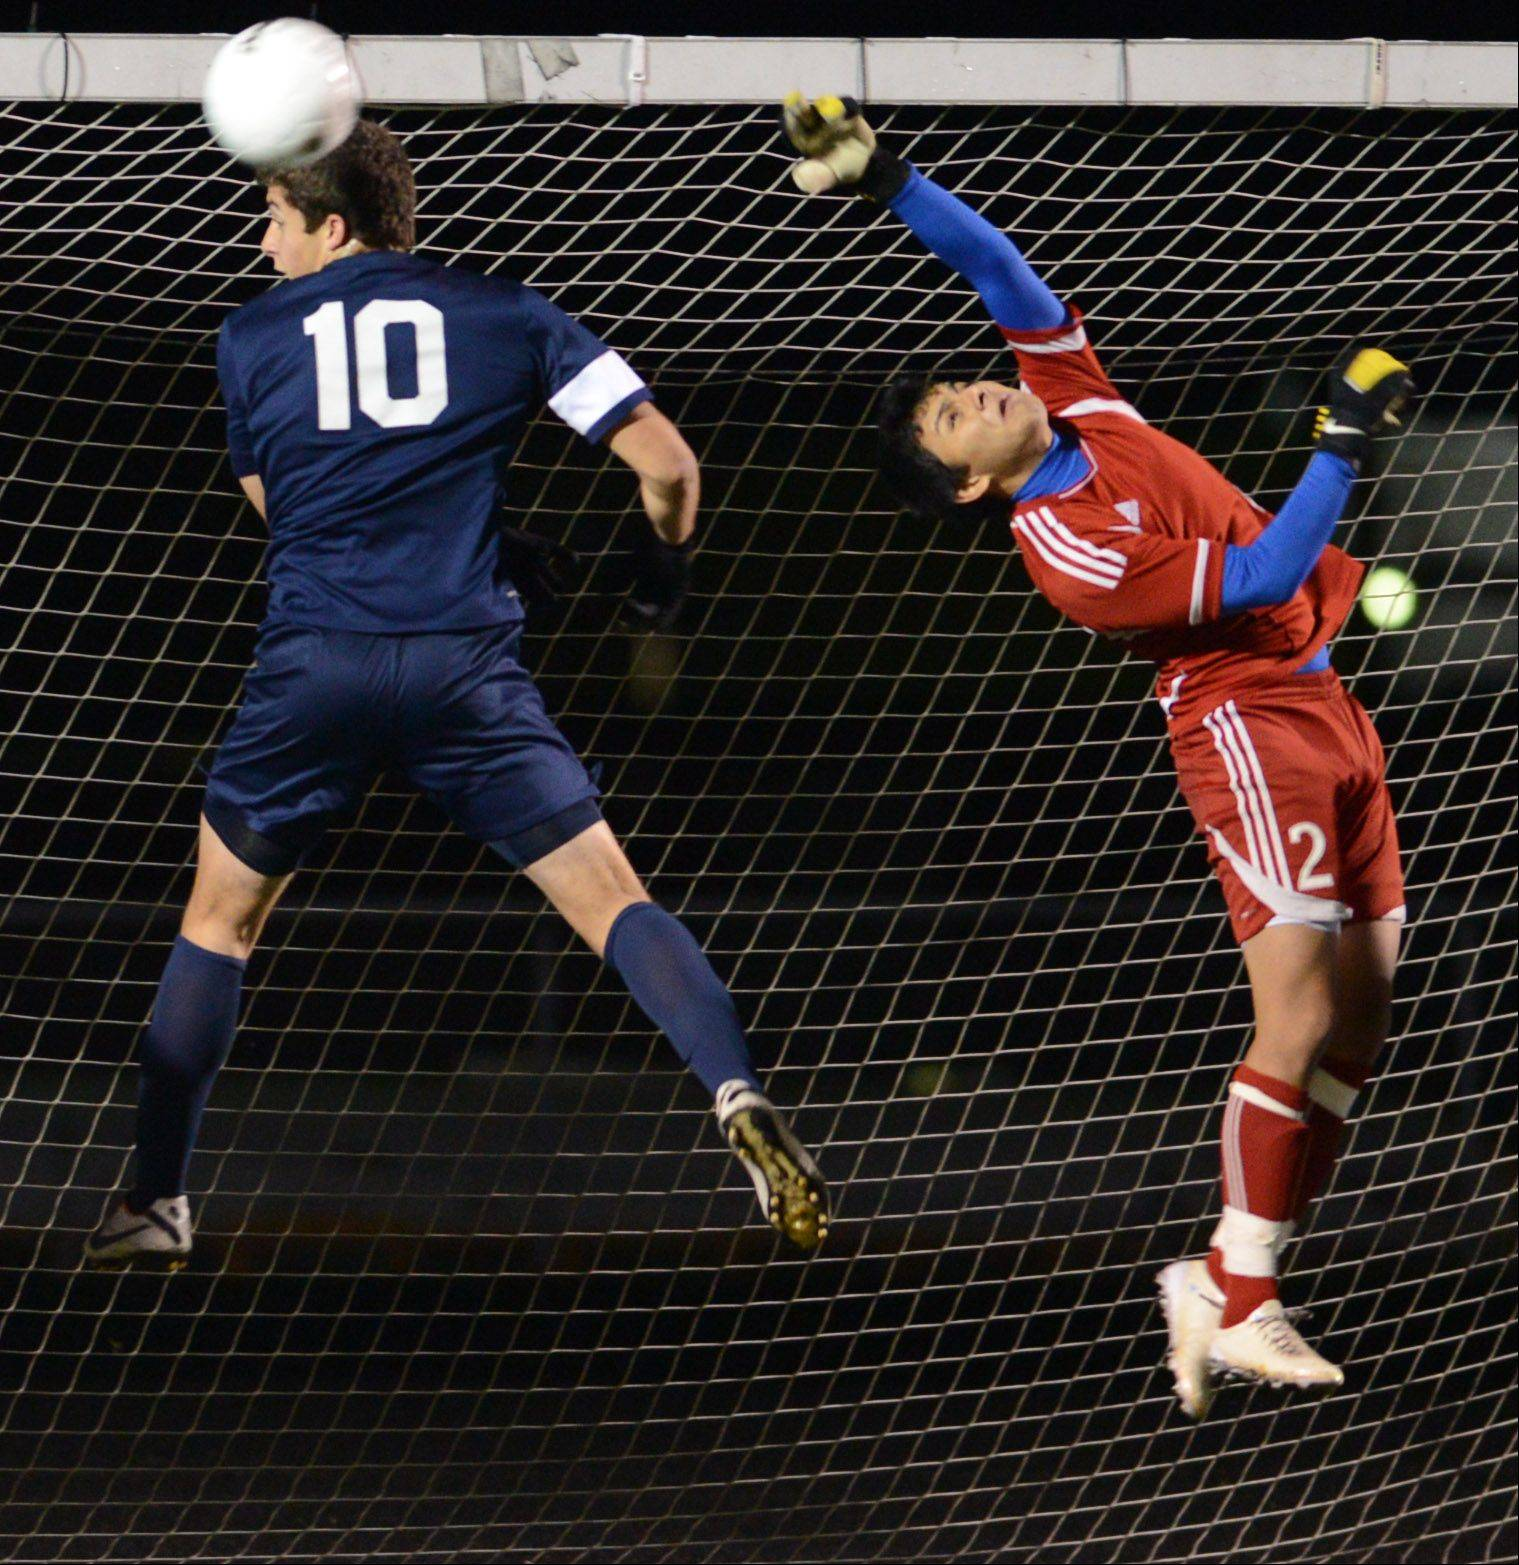 A corner kick sails past Larkin goalkeeper Aldair Dominguez and Lake Park's Mike Catalano during Tuesday's supersectional in Streamwood.